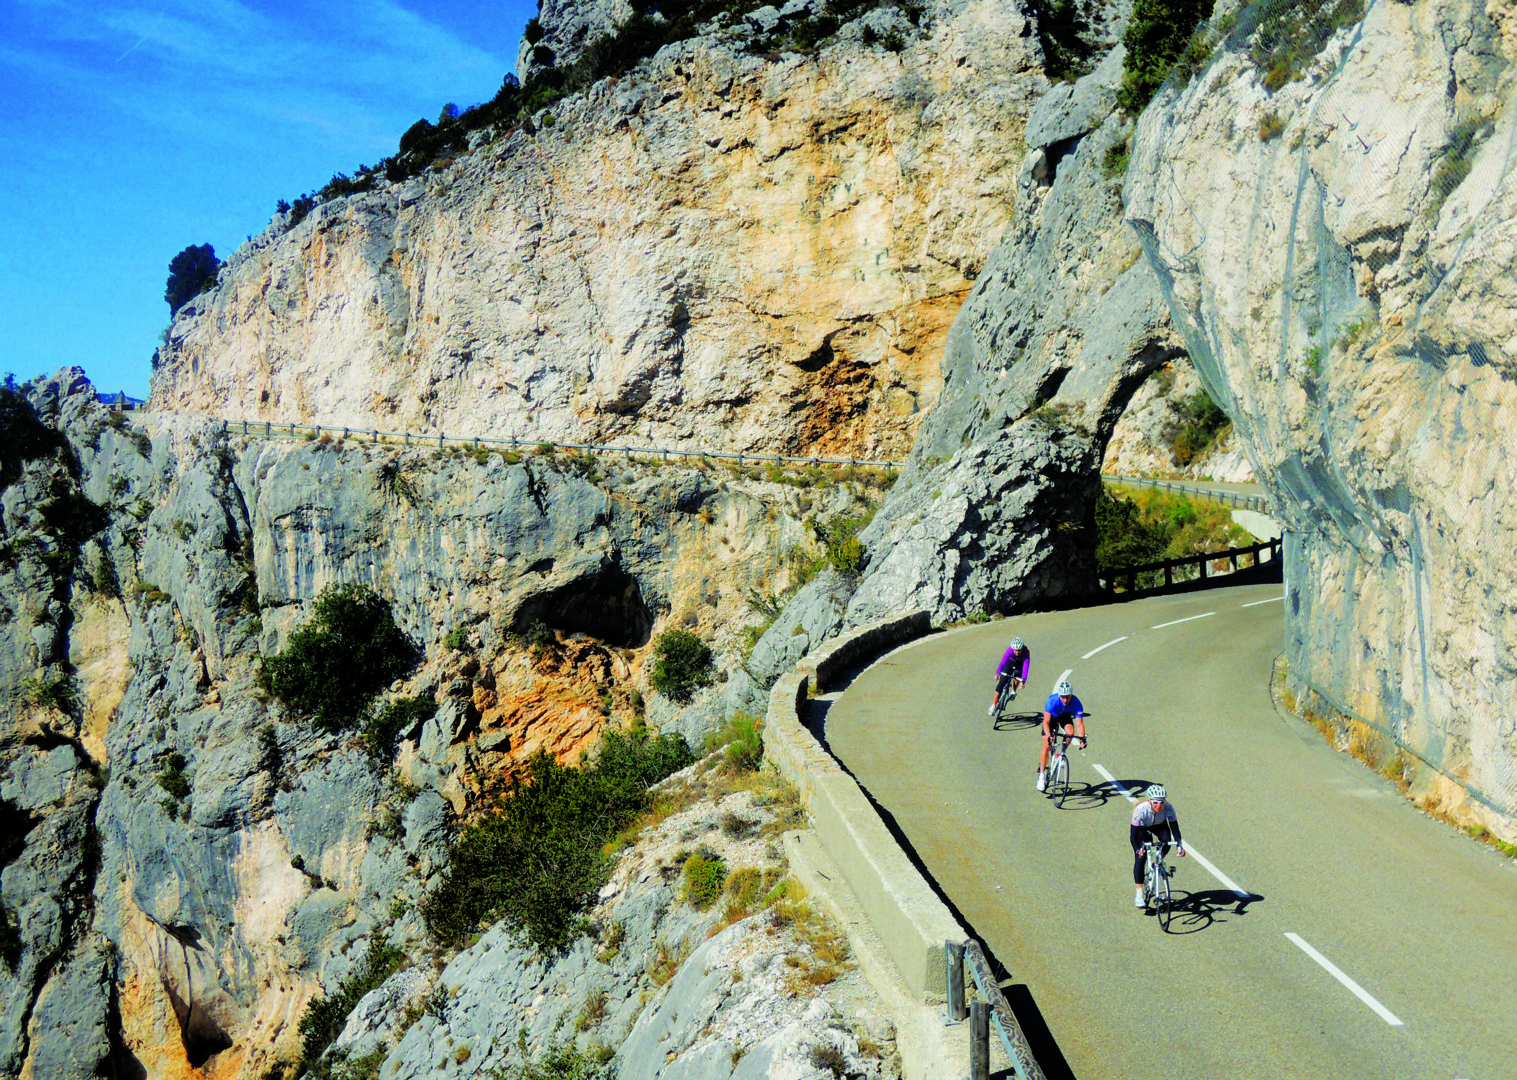 st-malo-to-nice-classic.jpg - France - St Malo to Nice Classic (15 days) - Guided Road Cycling Holiday - Road Cycling